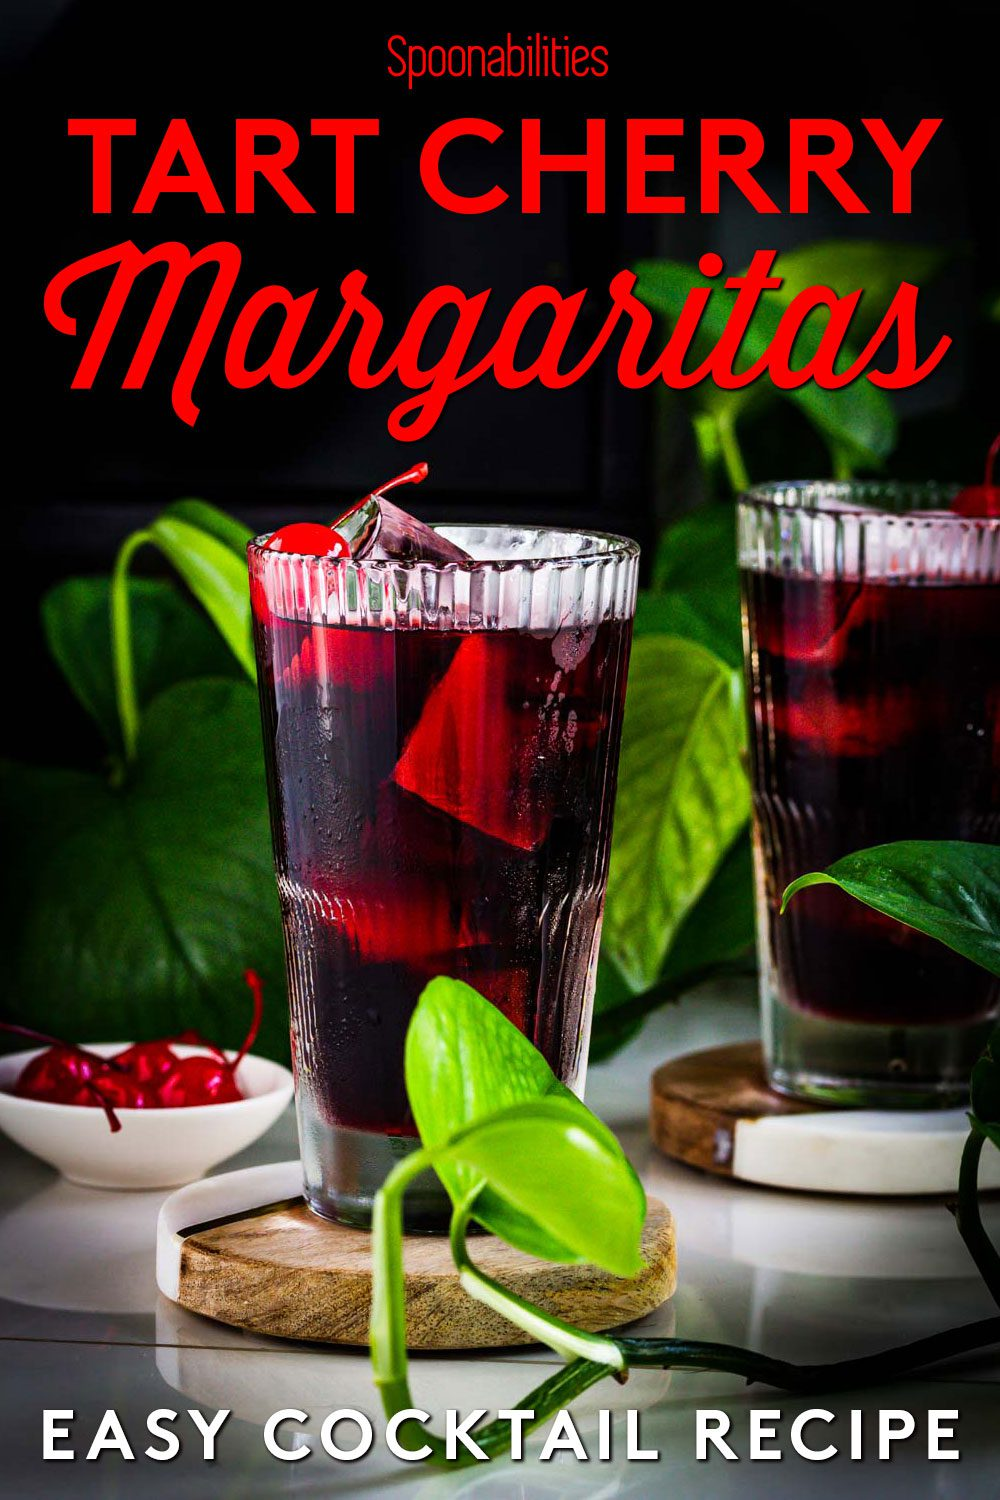 Two tall glasses of tart cherry margaritas around a green plant